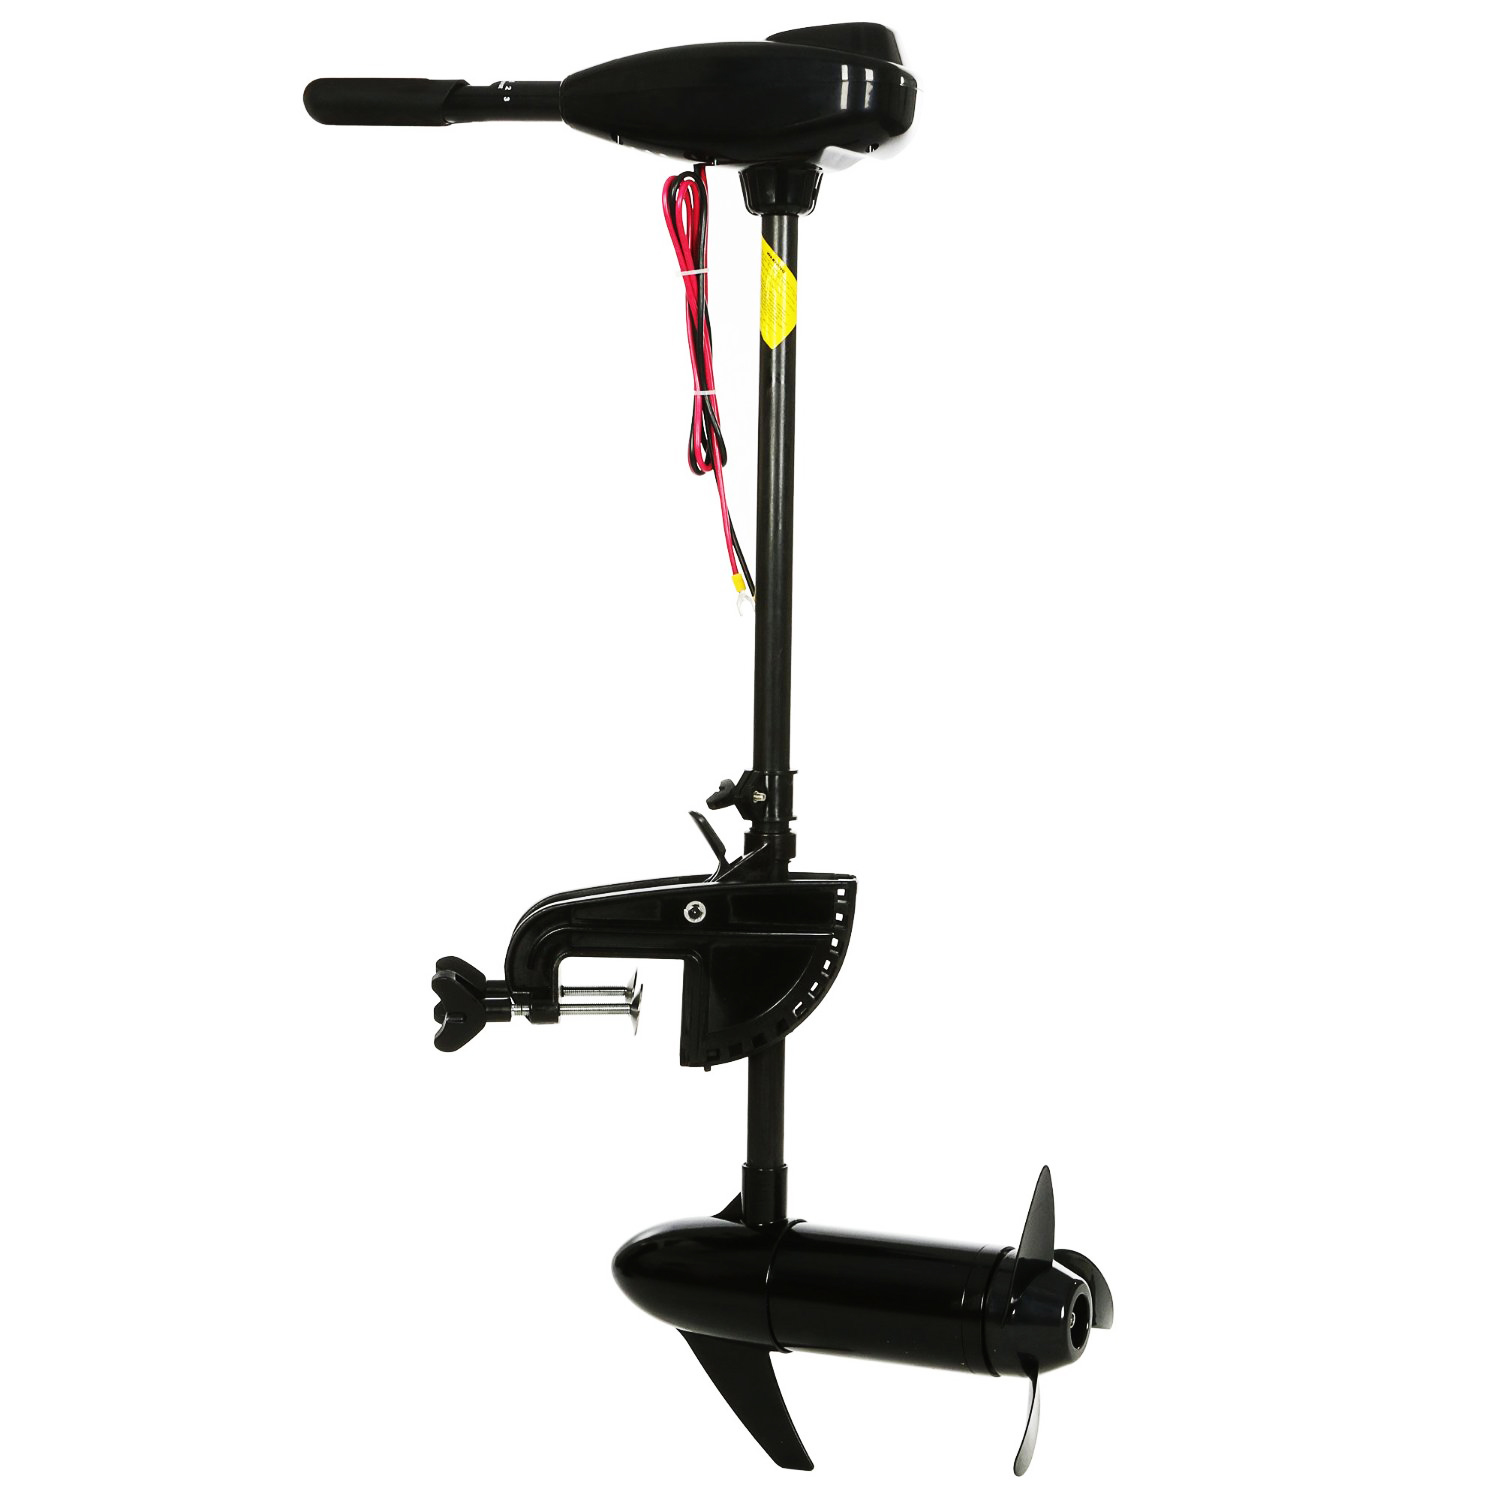 40 39 Lb Electric Outboard Trolling Motor 12v Battery